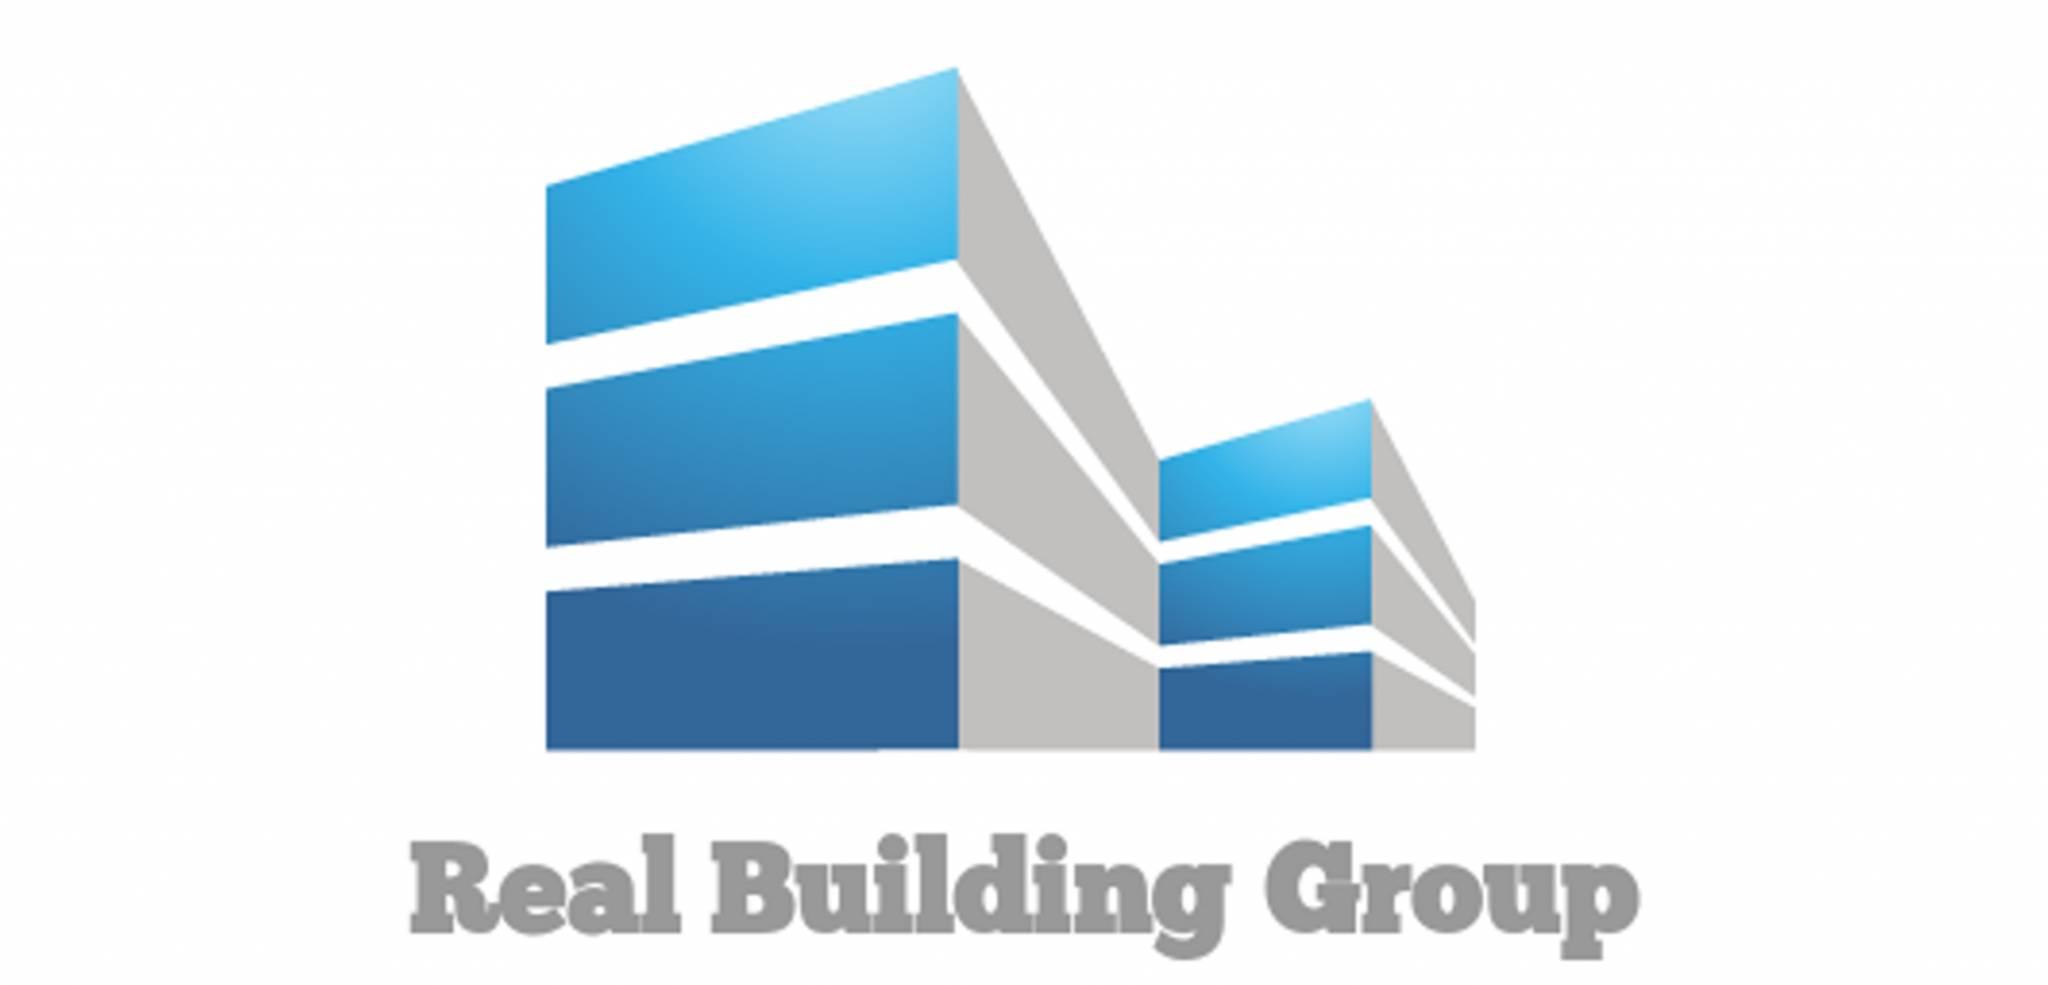 Real Building Group